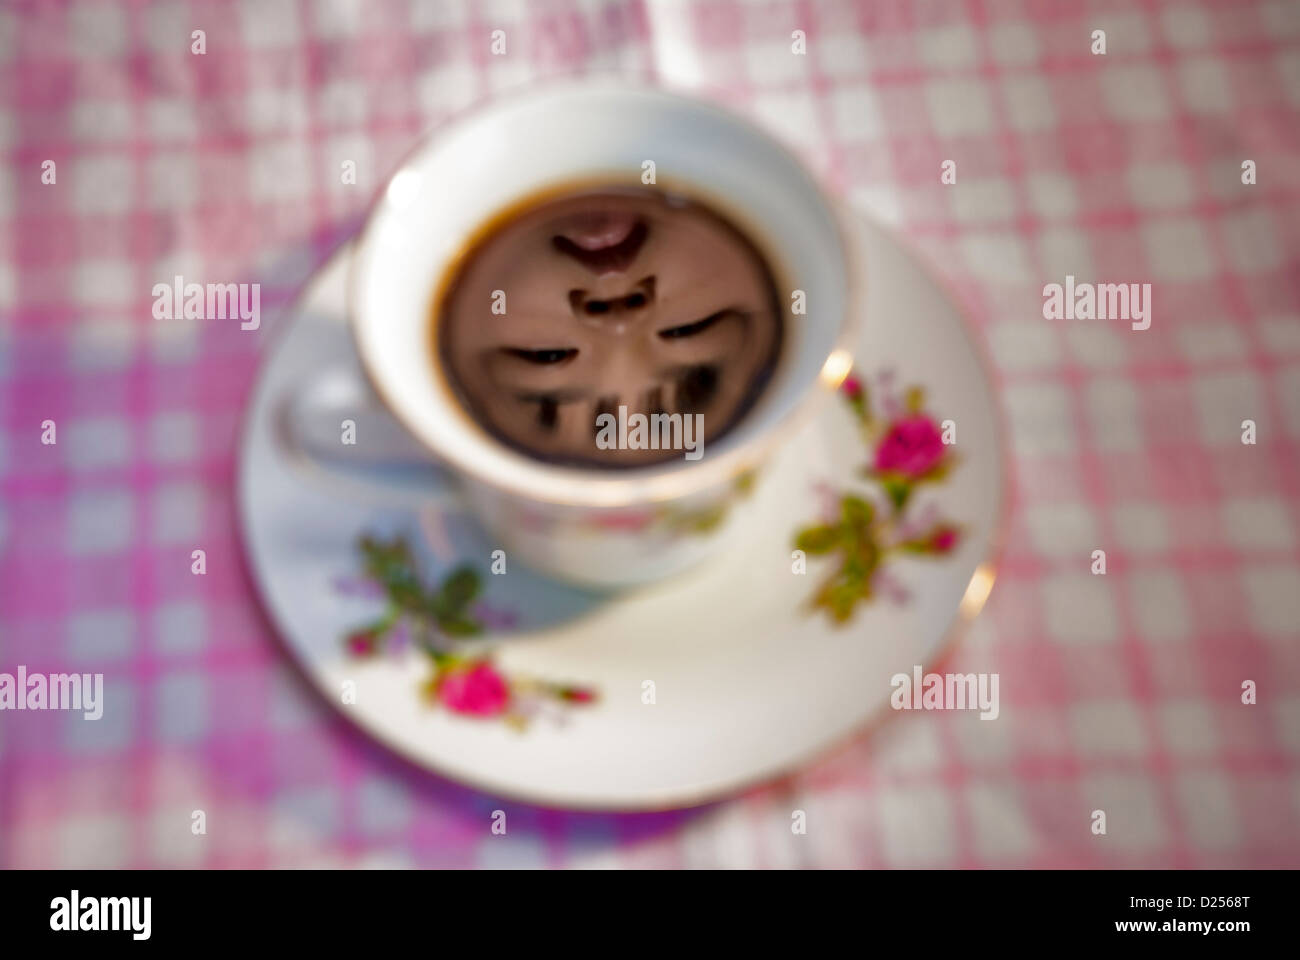 Cup of black coffee with the reflection of a human face - Stock Image